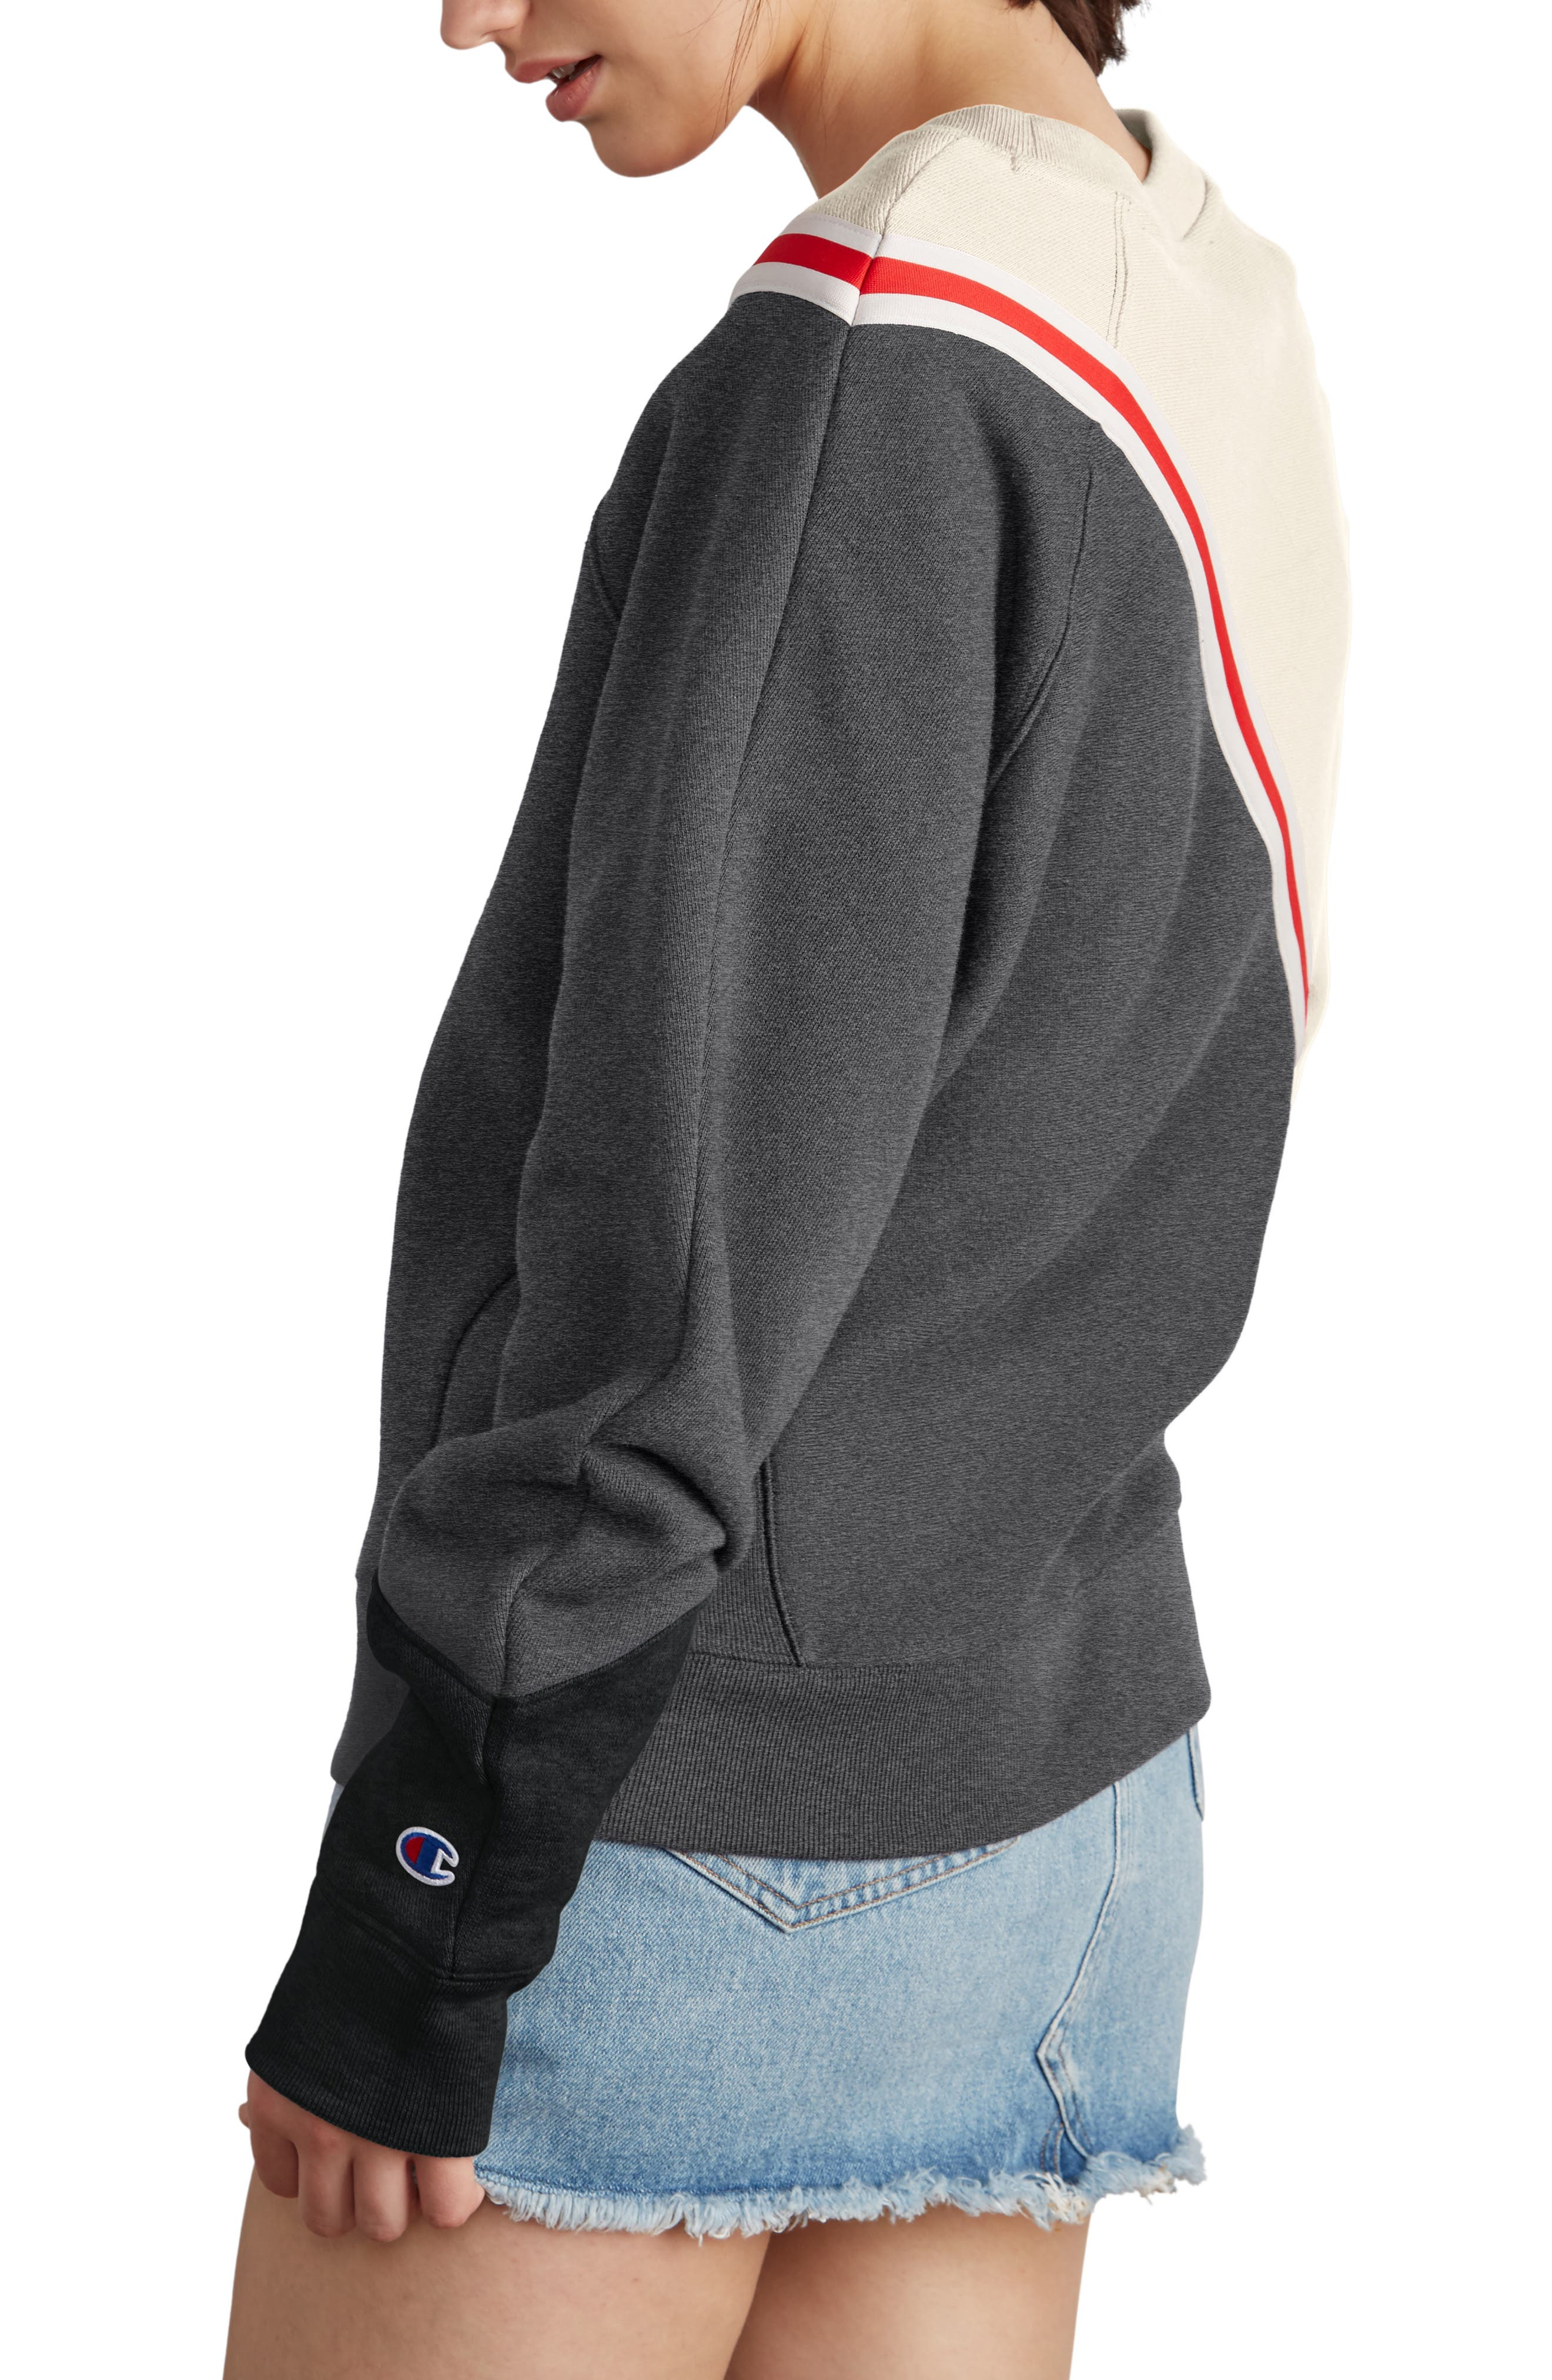 Colorblock Reverse Fleece Sweatshirt,                             Alternate thumbnail 3, color,                             QUARTZ CRM/GRANITE/BLACK